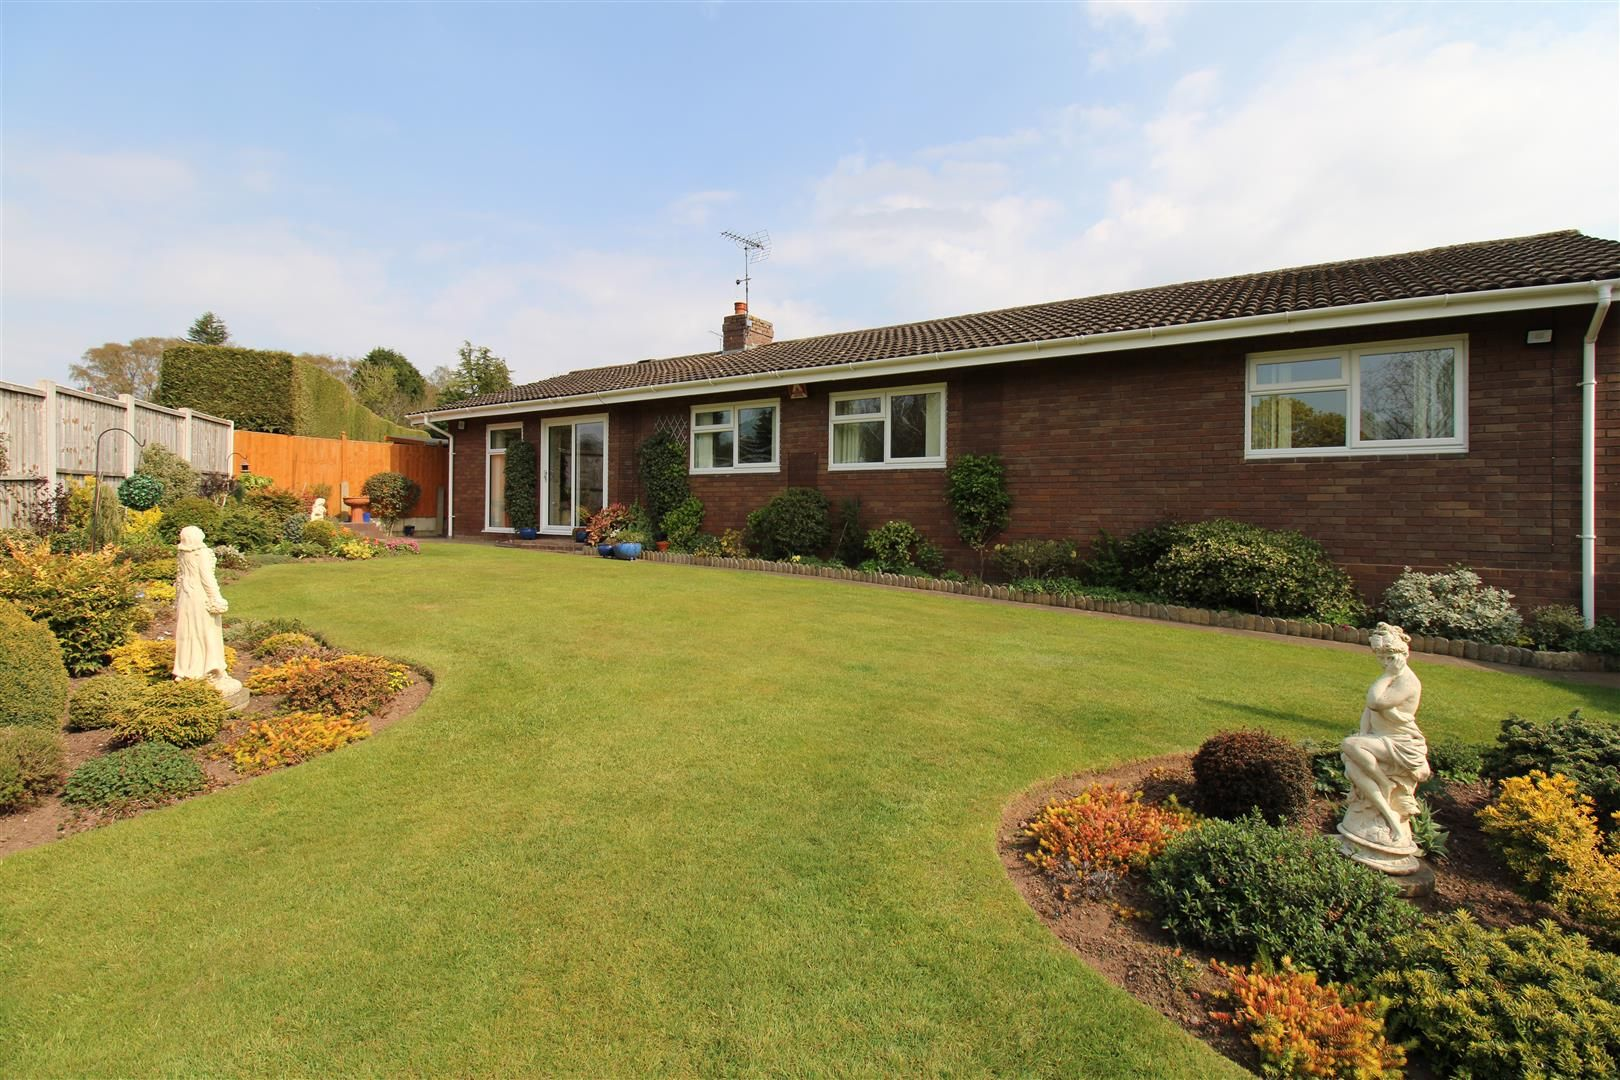 3 bed detached-bungalow for sale in Kinver 30